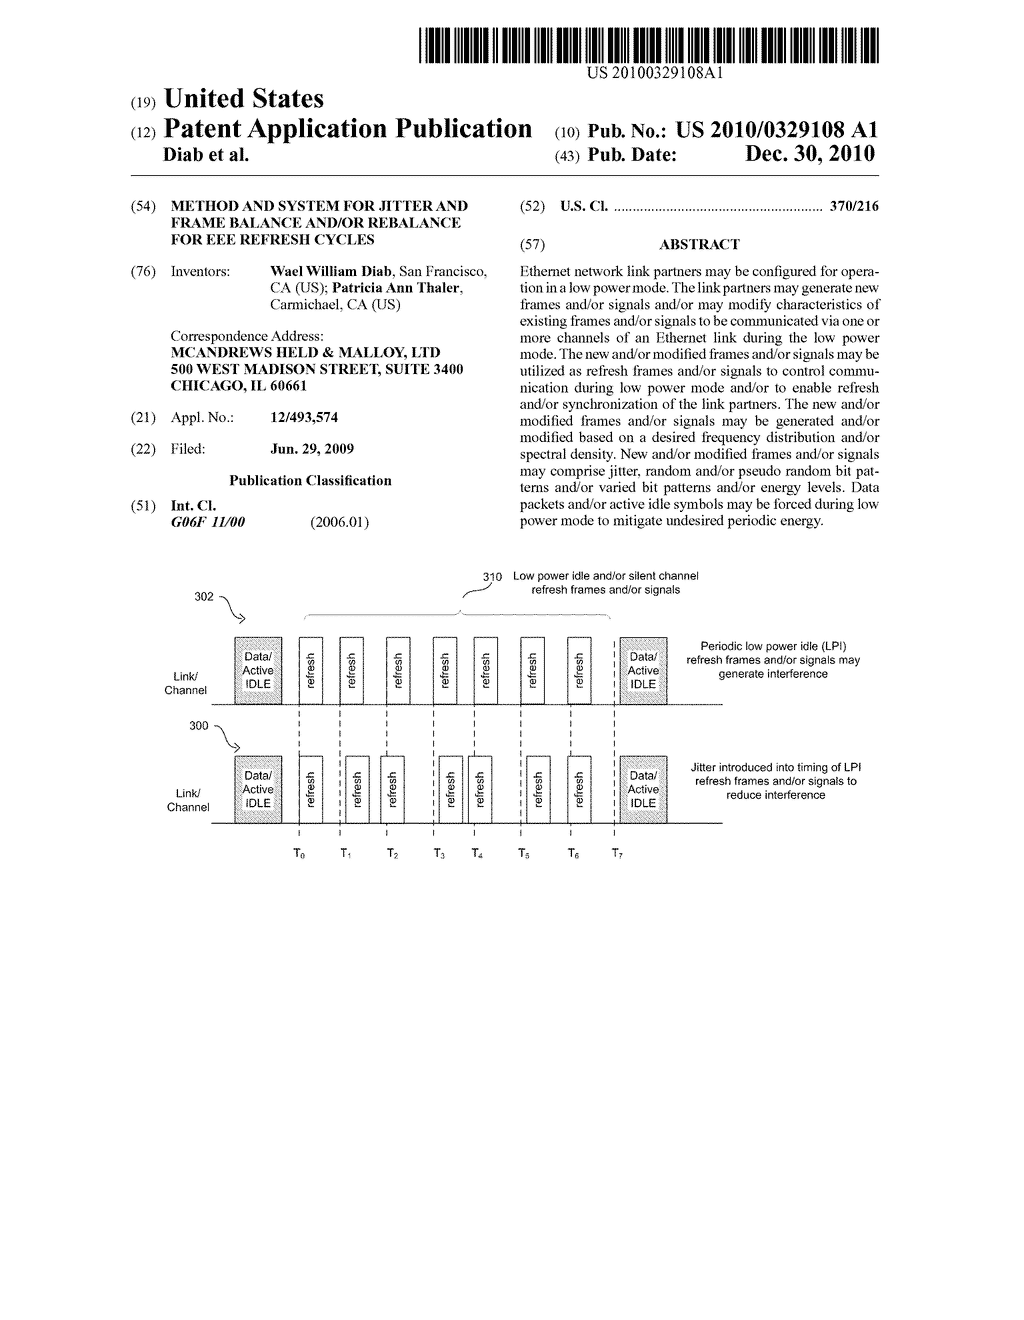 Method And System For Jitter And Frame Balance And/Or Rebalance For EEE Refresh Cycles - diagram, schematic, and image 01